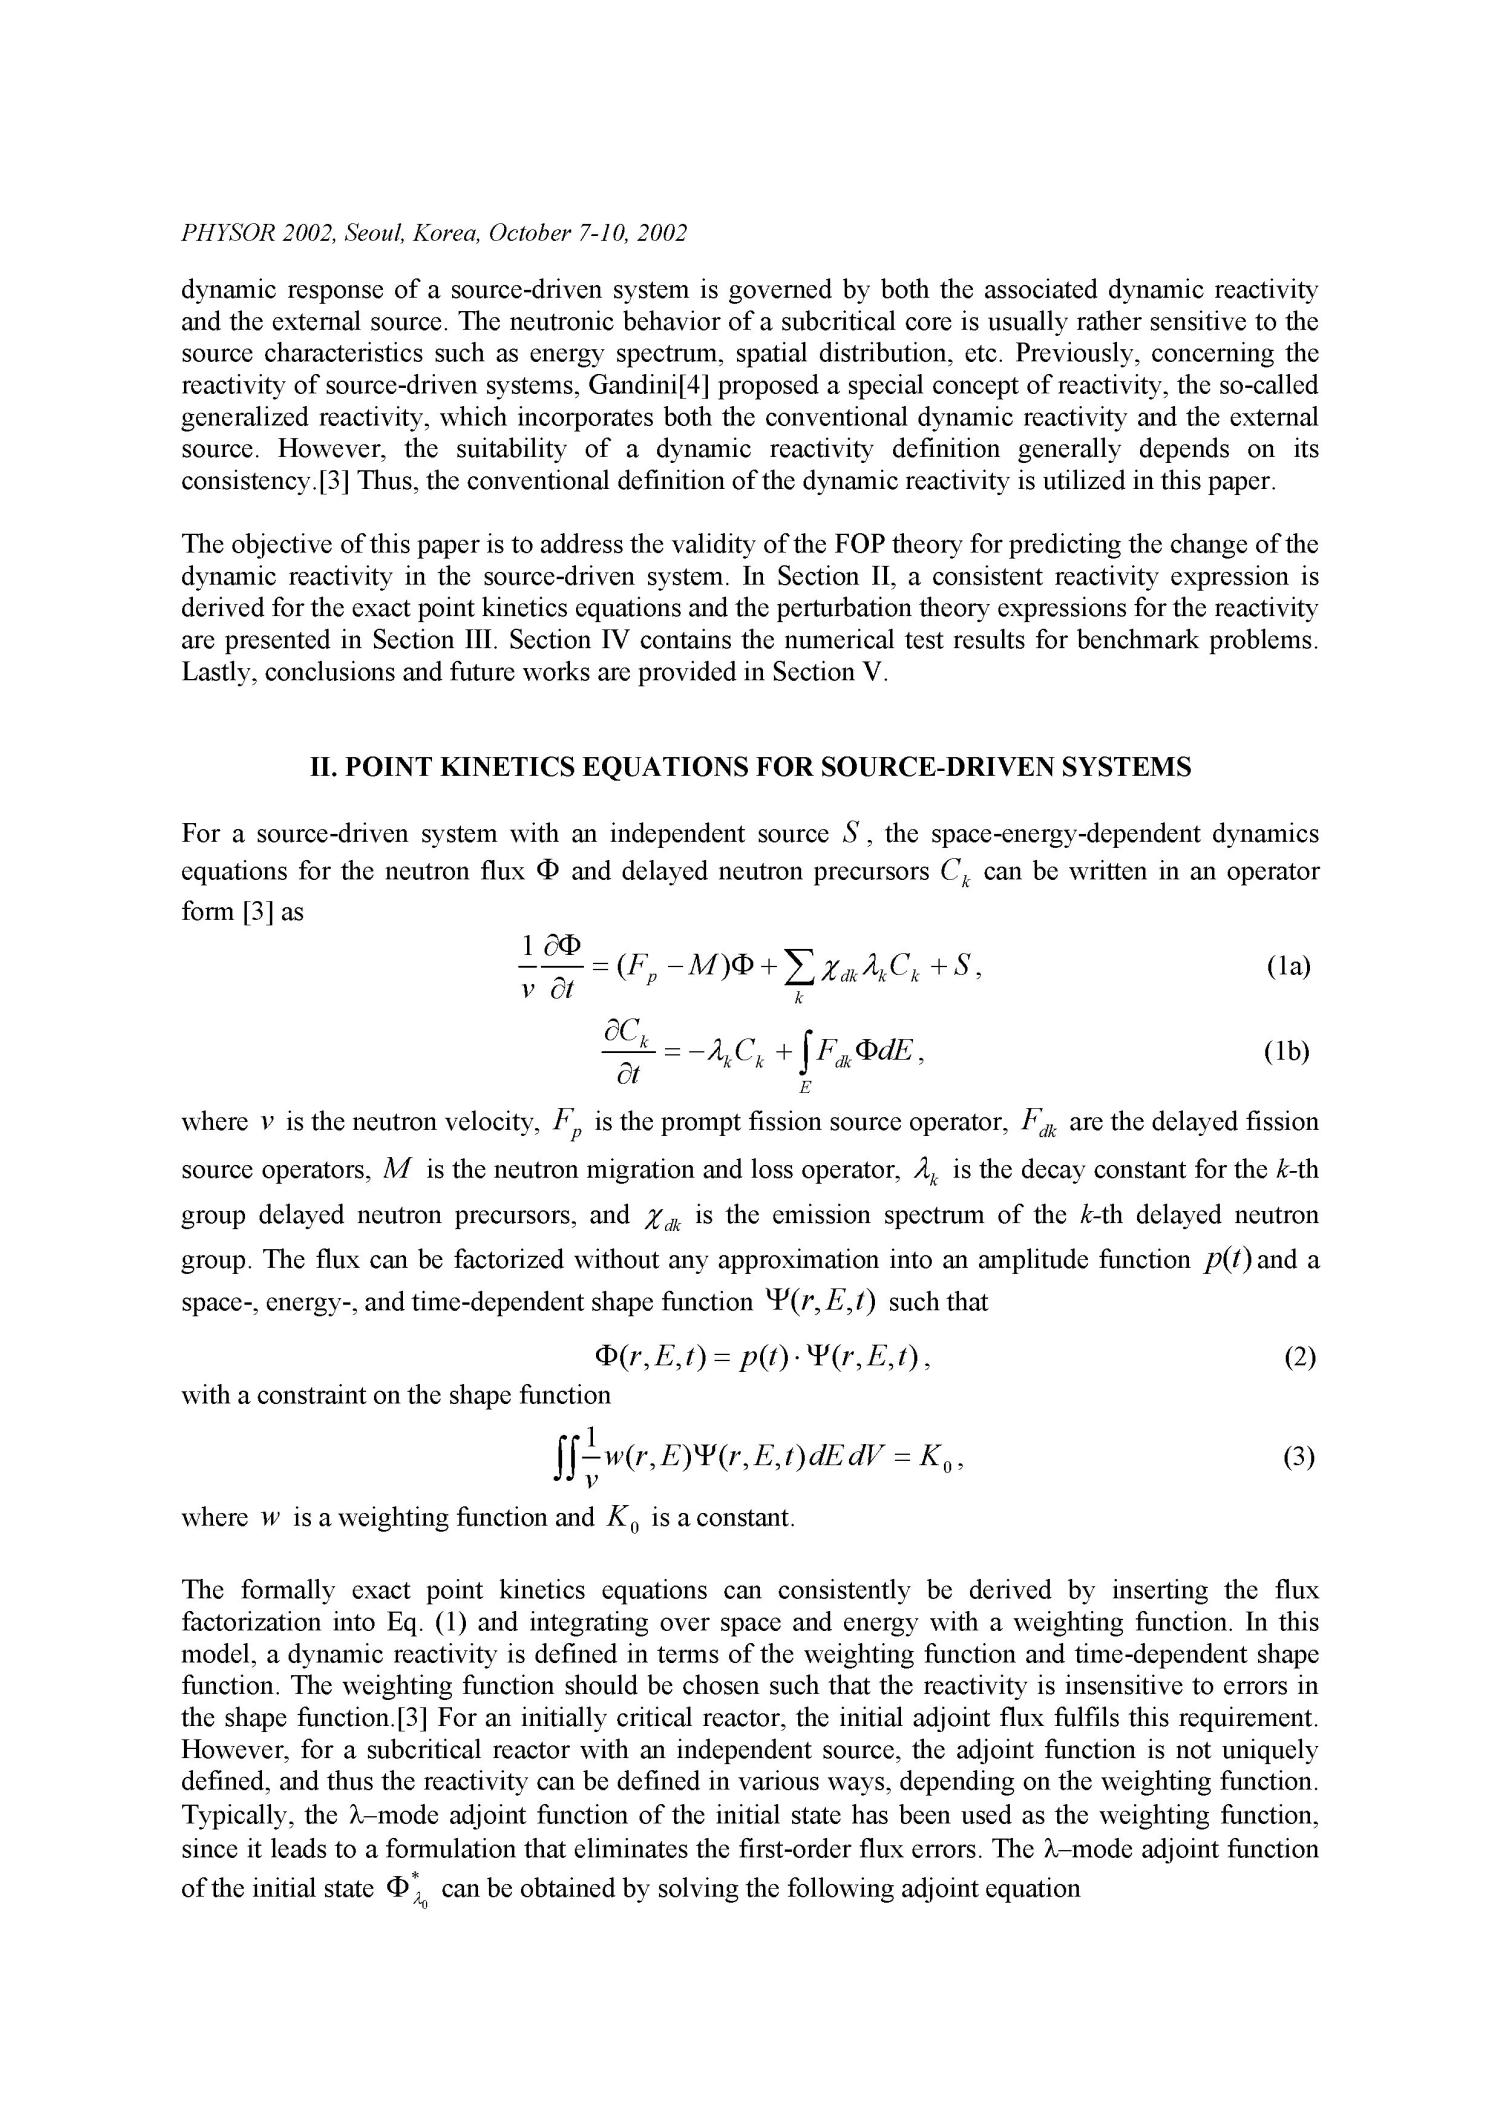 Reactivity estimation for source-driven systems using first-order perturbation theory.                                                                                                      [Sequence #]: 2 of 11